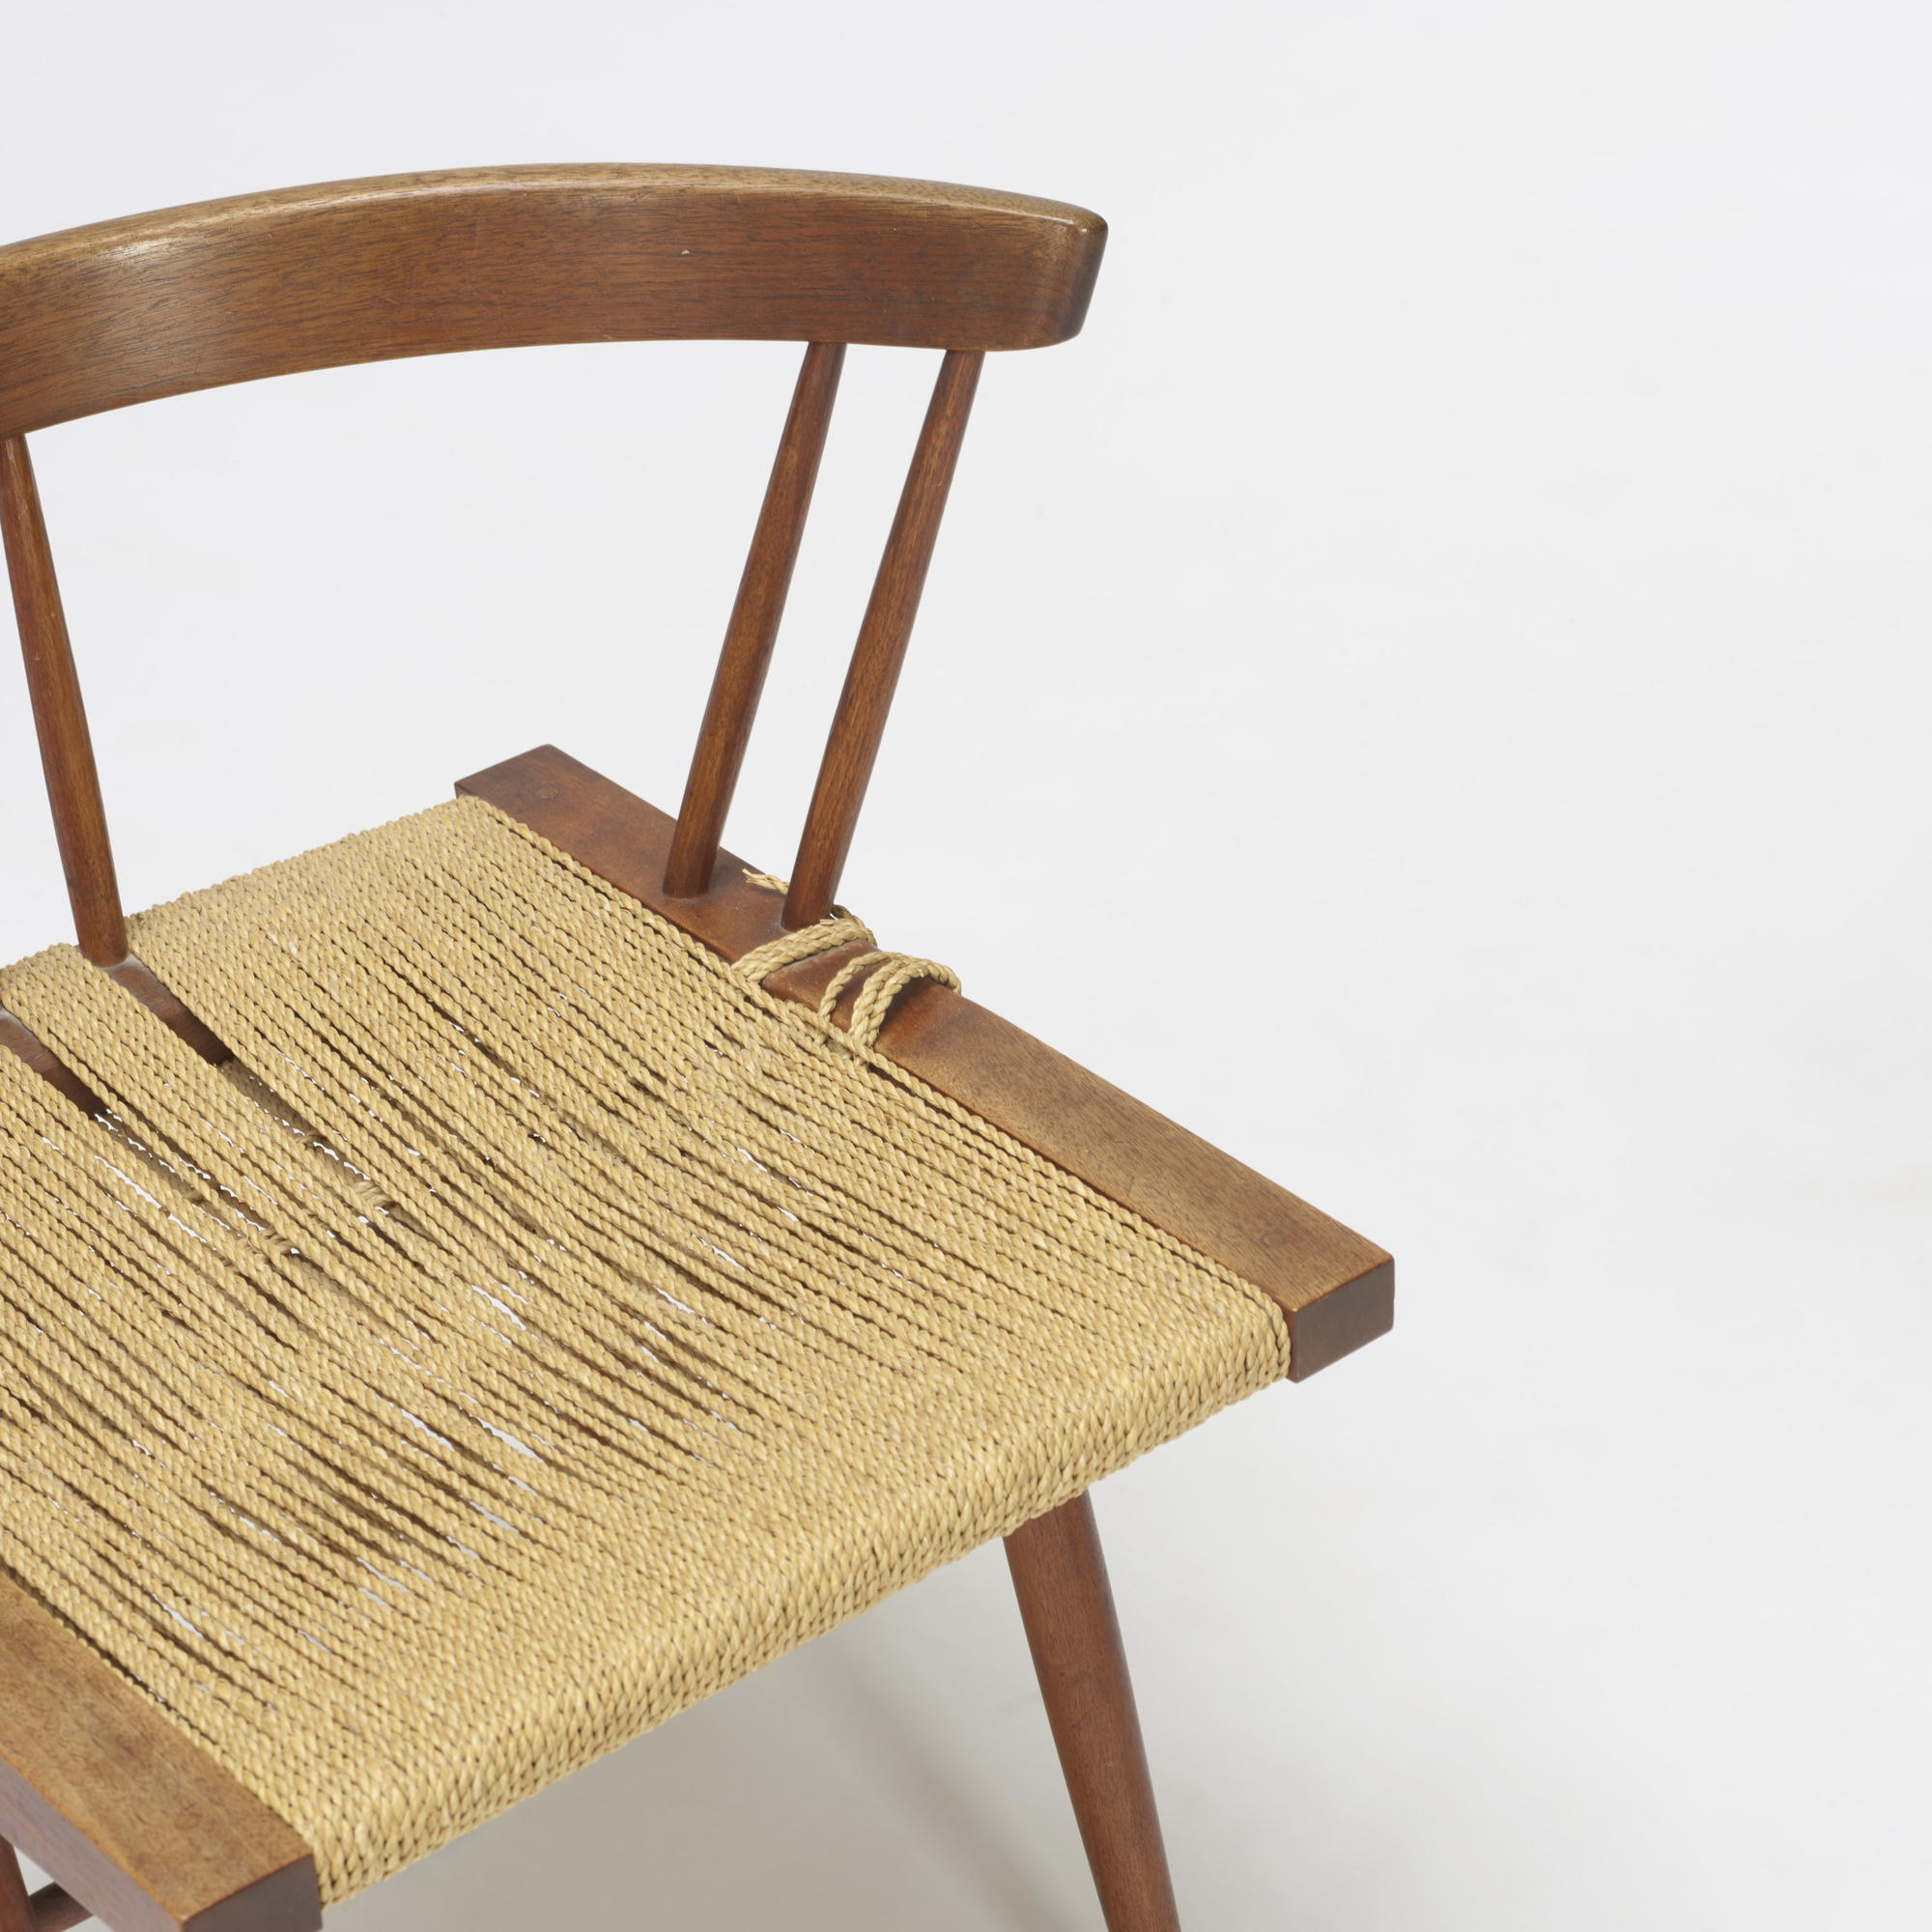 ... 120: George Nakashima / Grass Seated Chairs, Pair (2 Of 2)